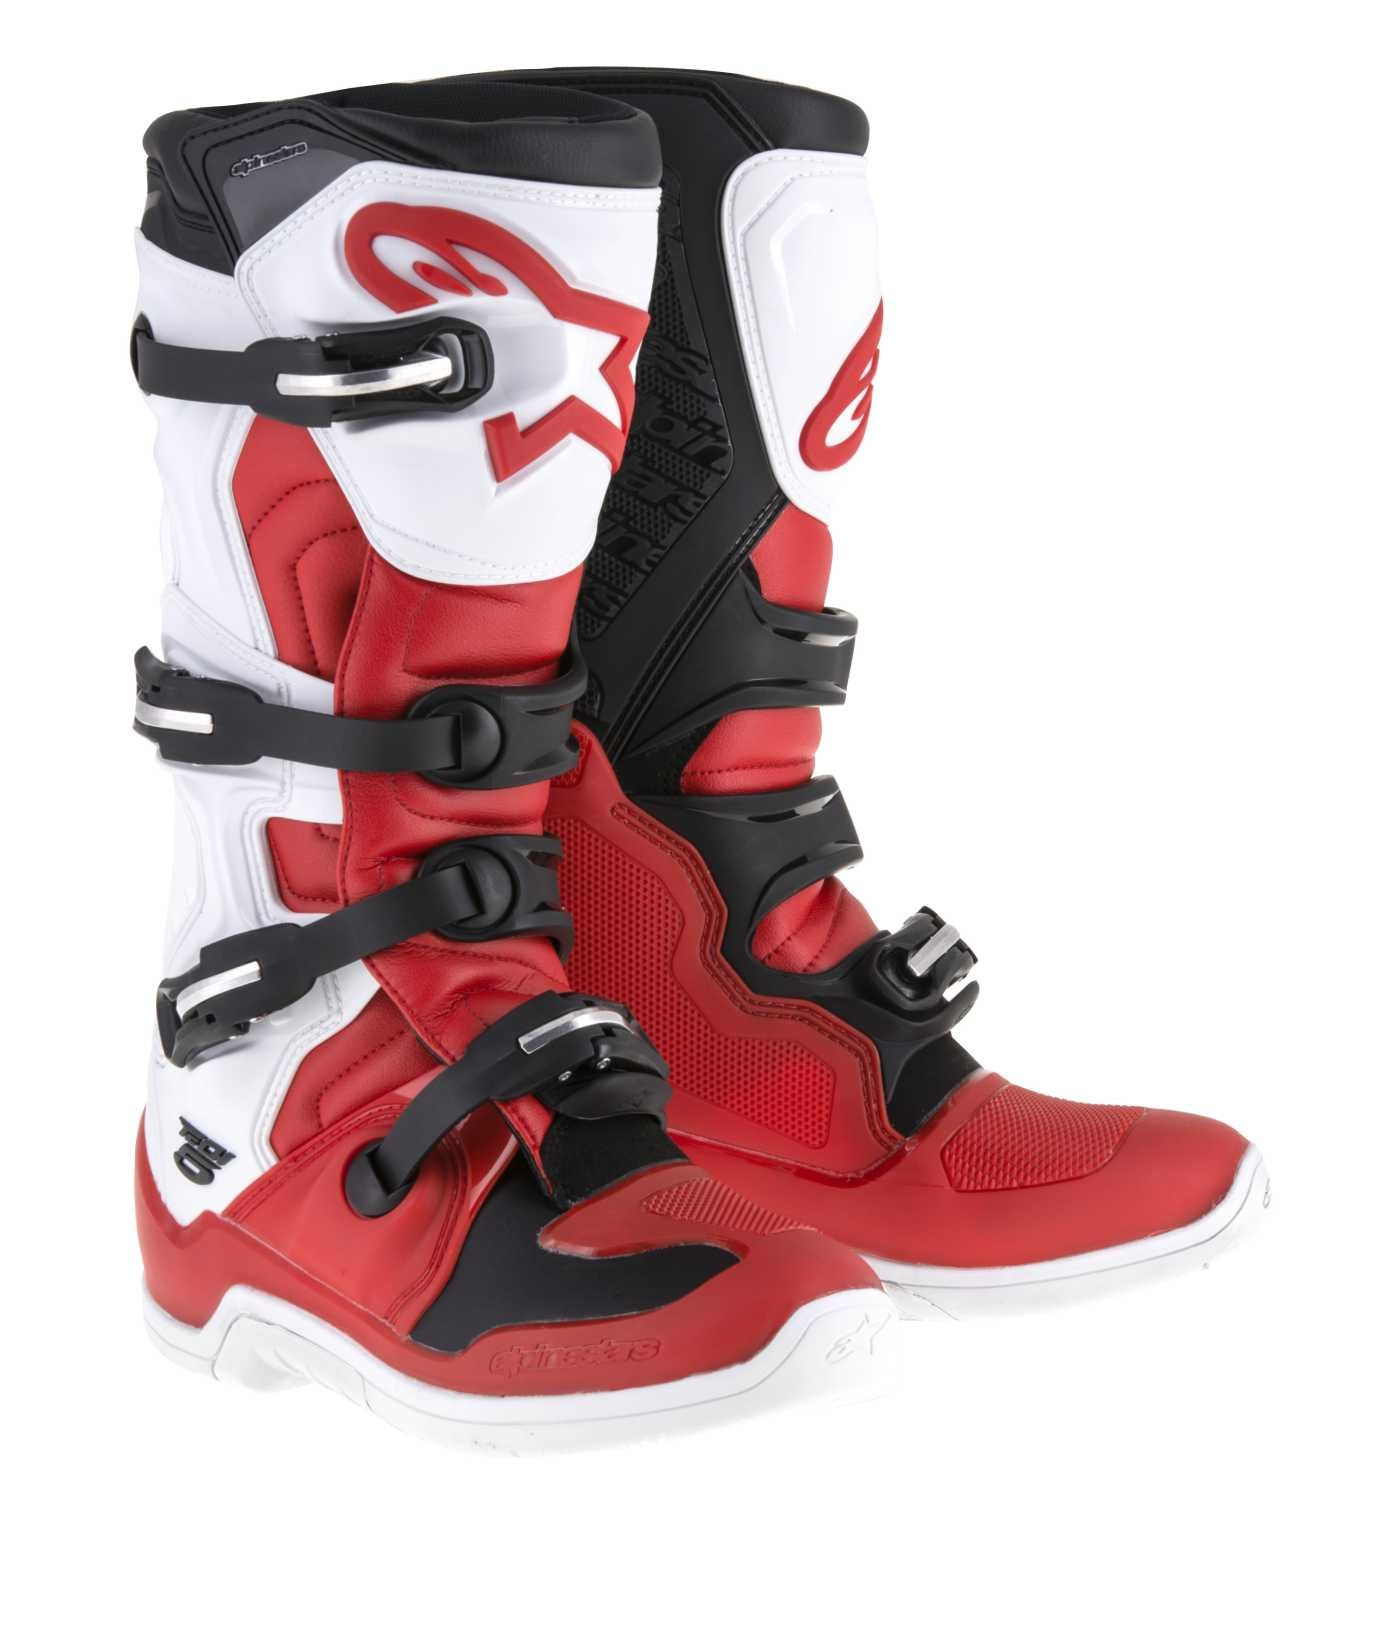 Alpinestars Tech 5 Boots-Red/White/Black-7 by Alpinestars